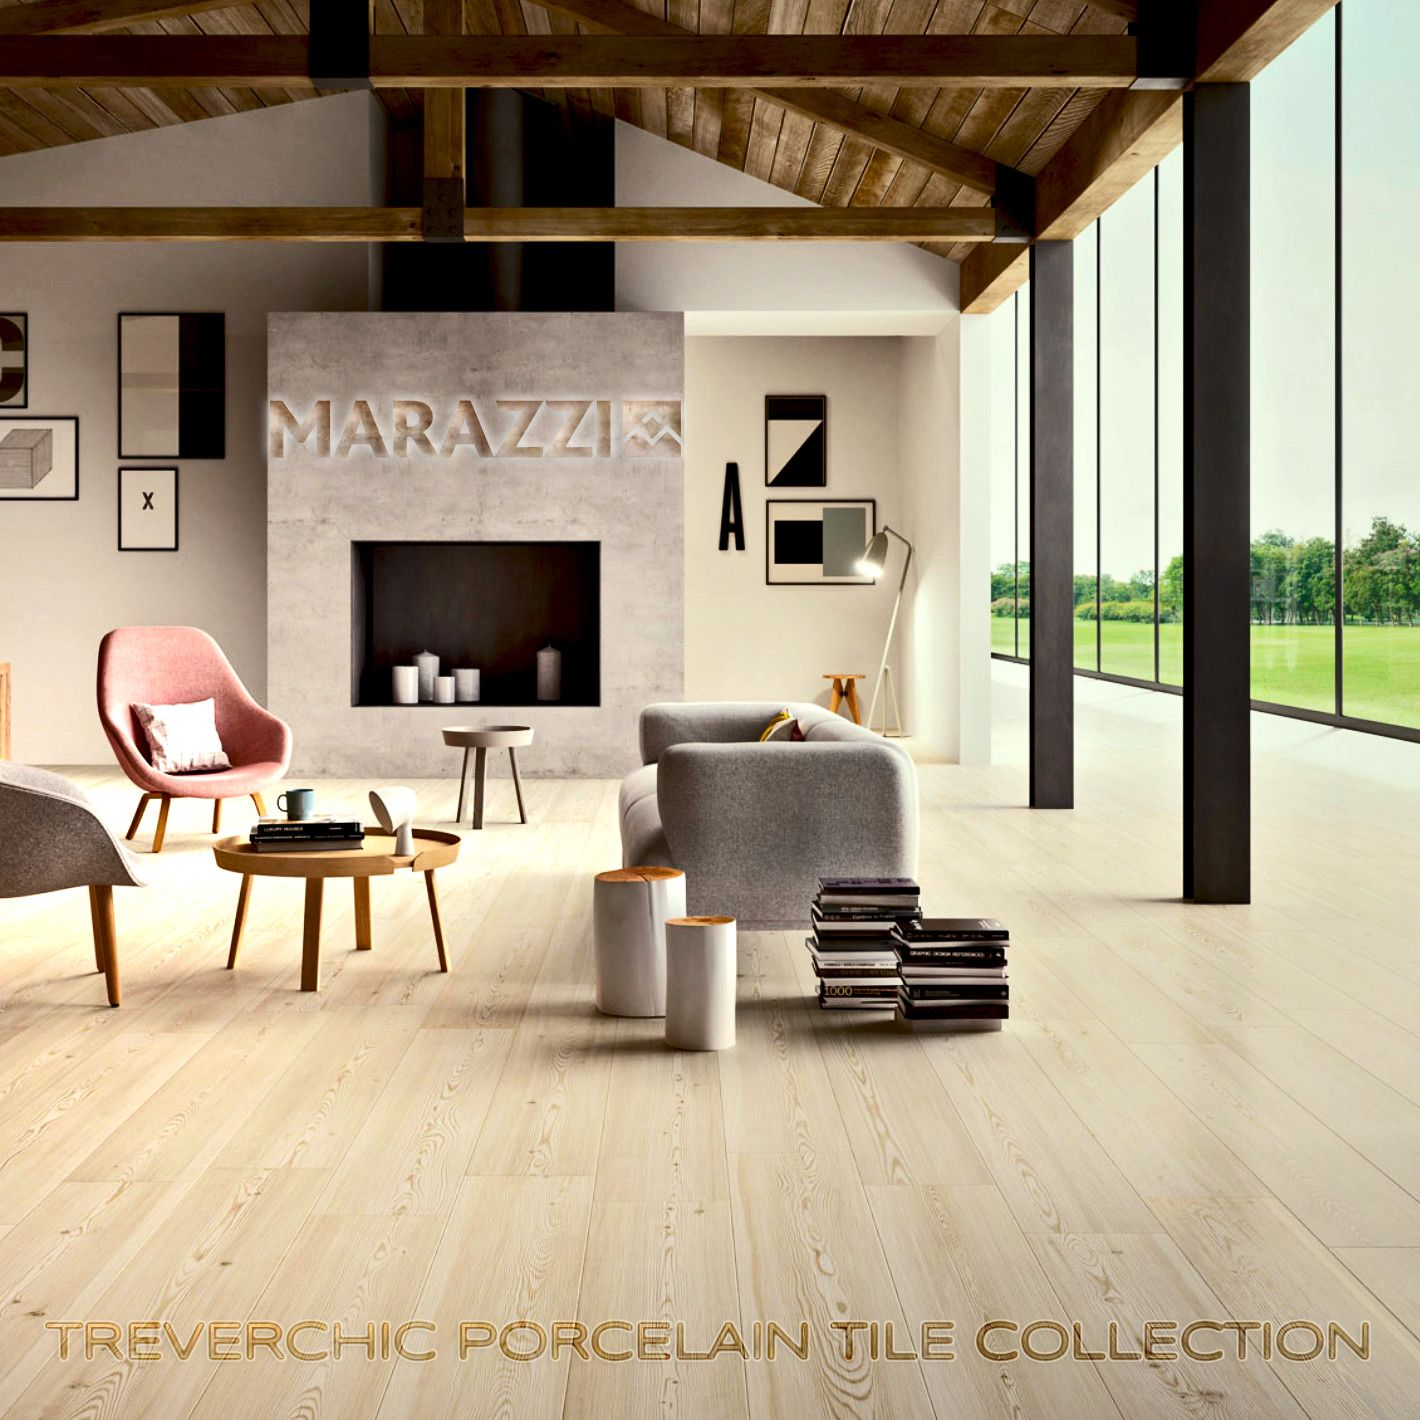 #Marazzi Treverchic #WoodLookTile Makes A Statement In Any